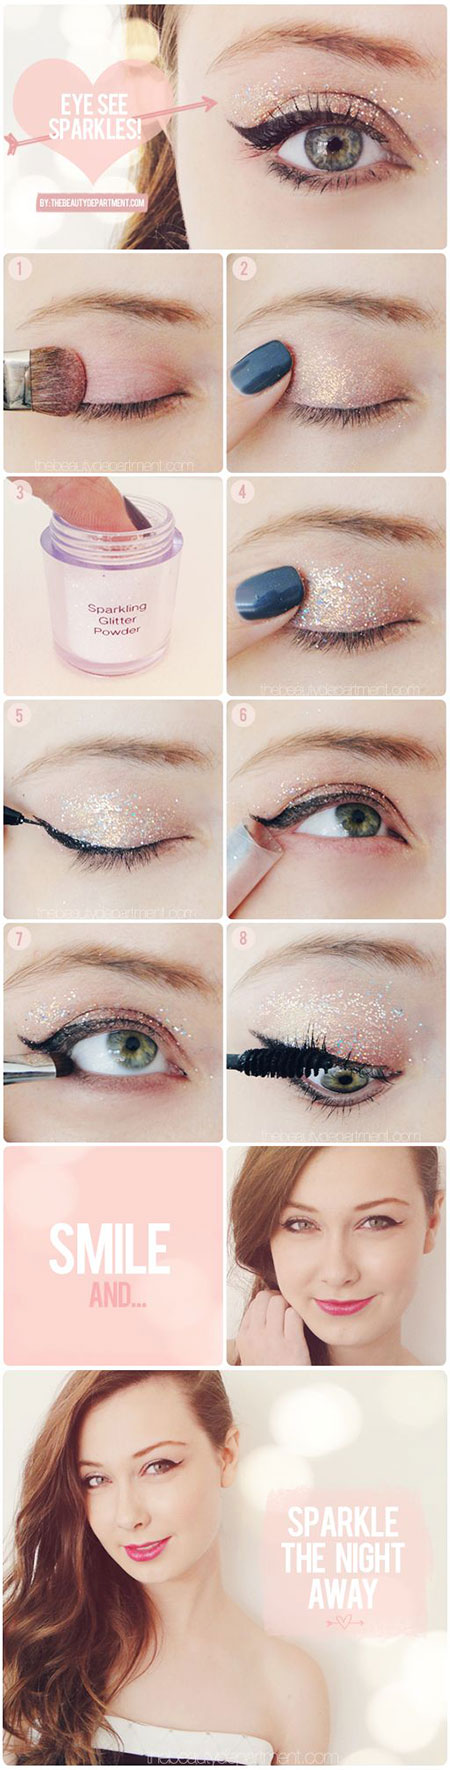 12-Easy-Step-By-Step-Natural-Eye-Make-Up-Tutorials-For-Beginners-2014-11